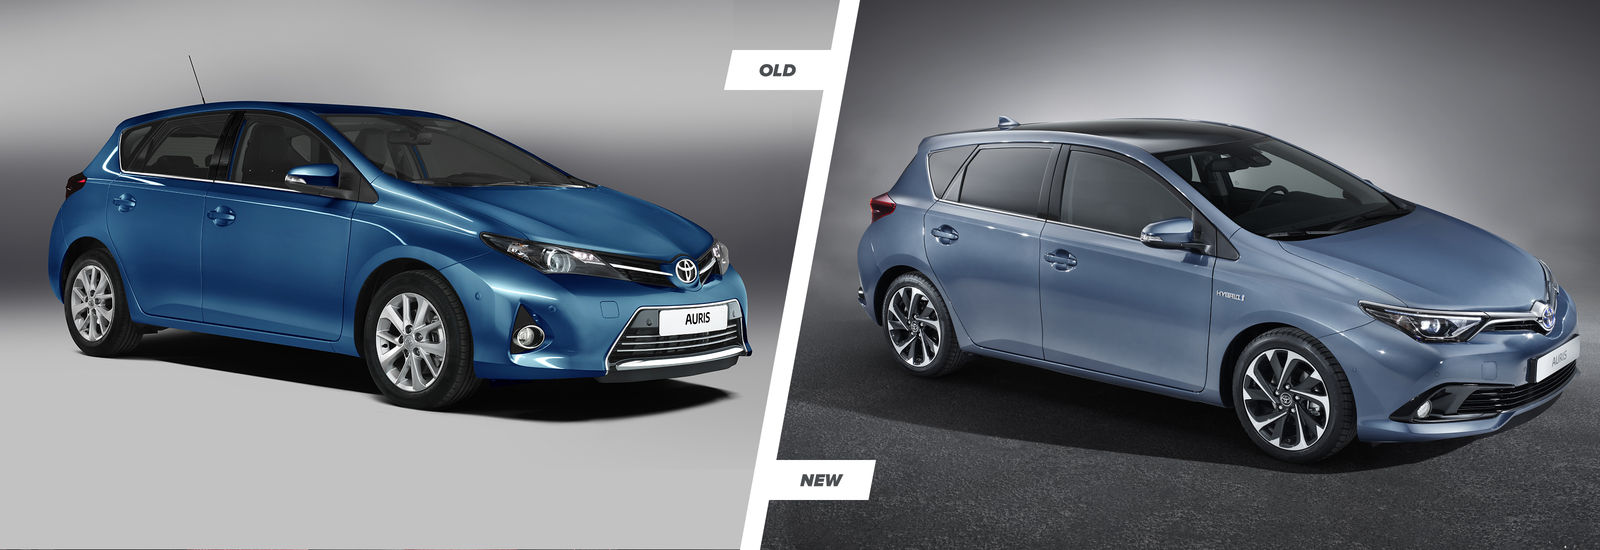 2015 toyota auris facelift can you tell the difference